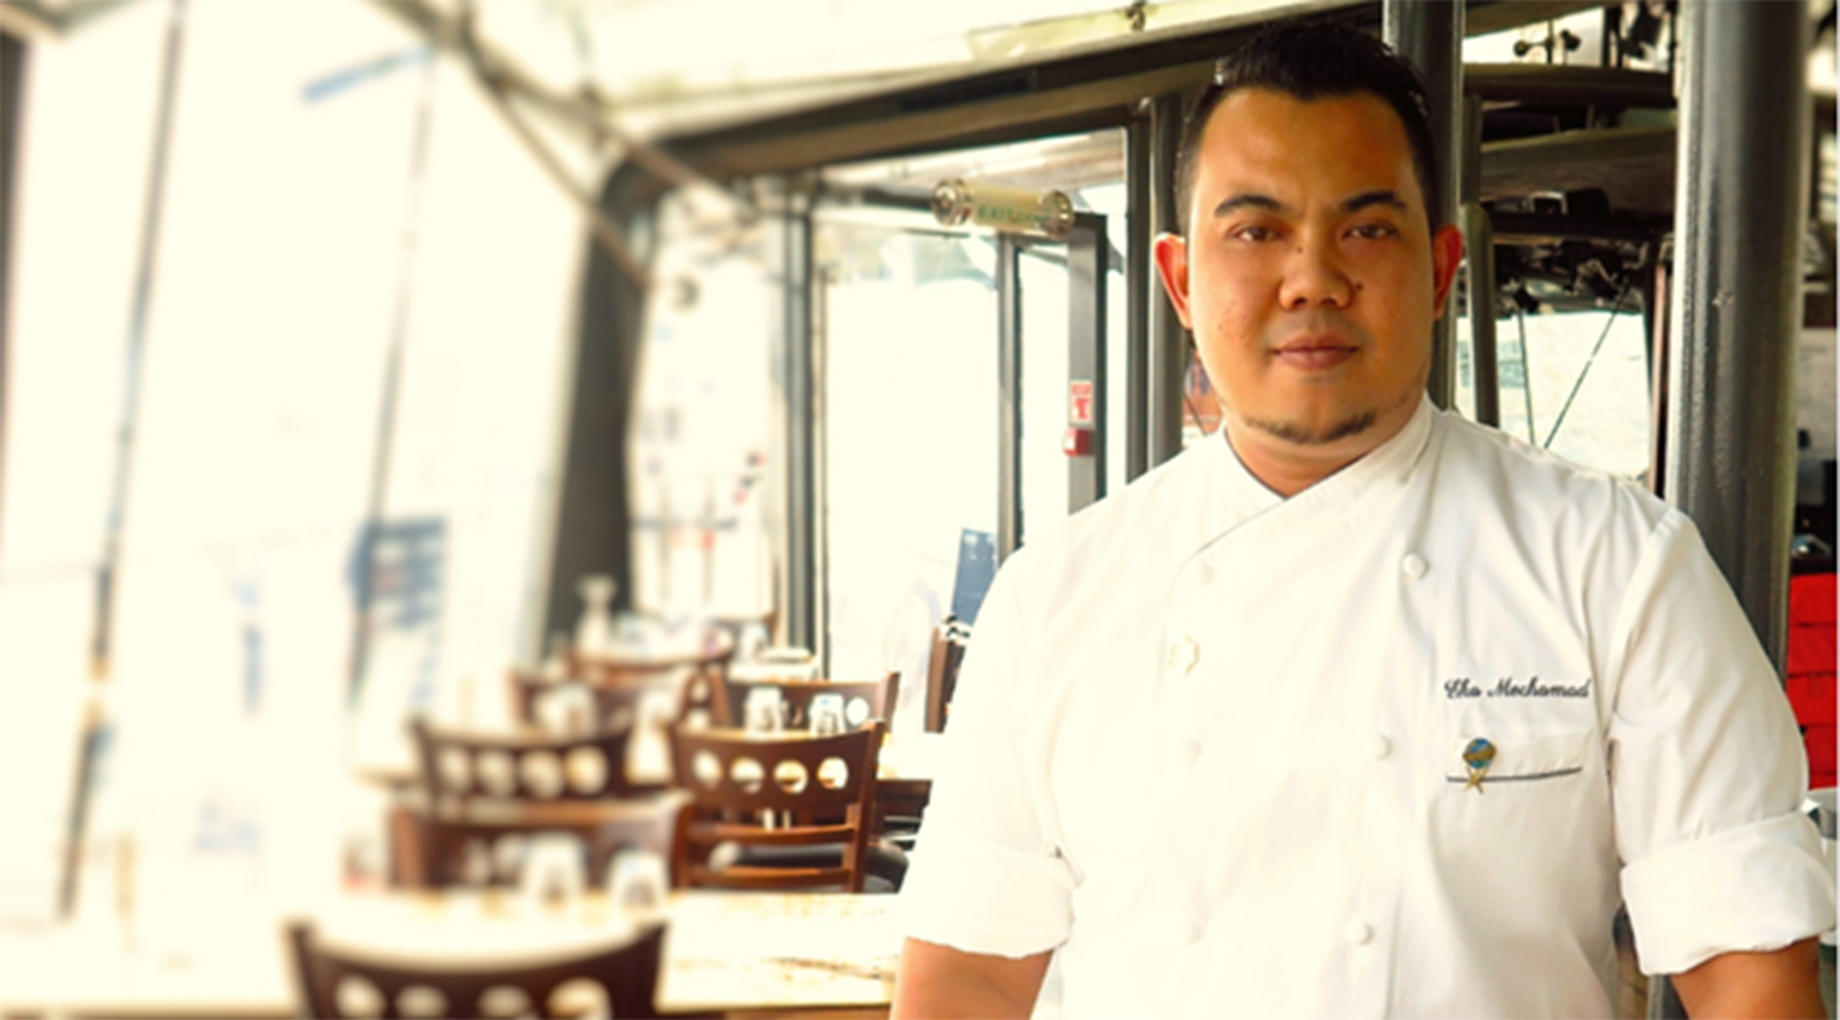 JA Resorts & Hotels welcomes Chef Eka Mochamad aboard Bateaux Dubai